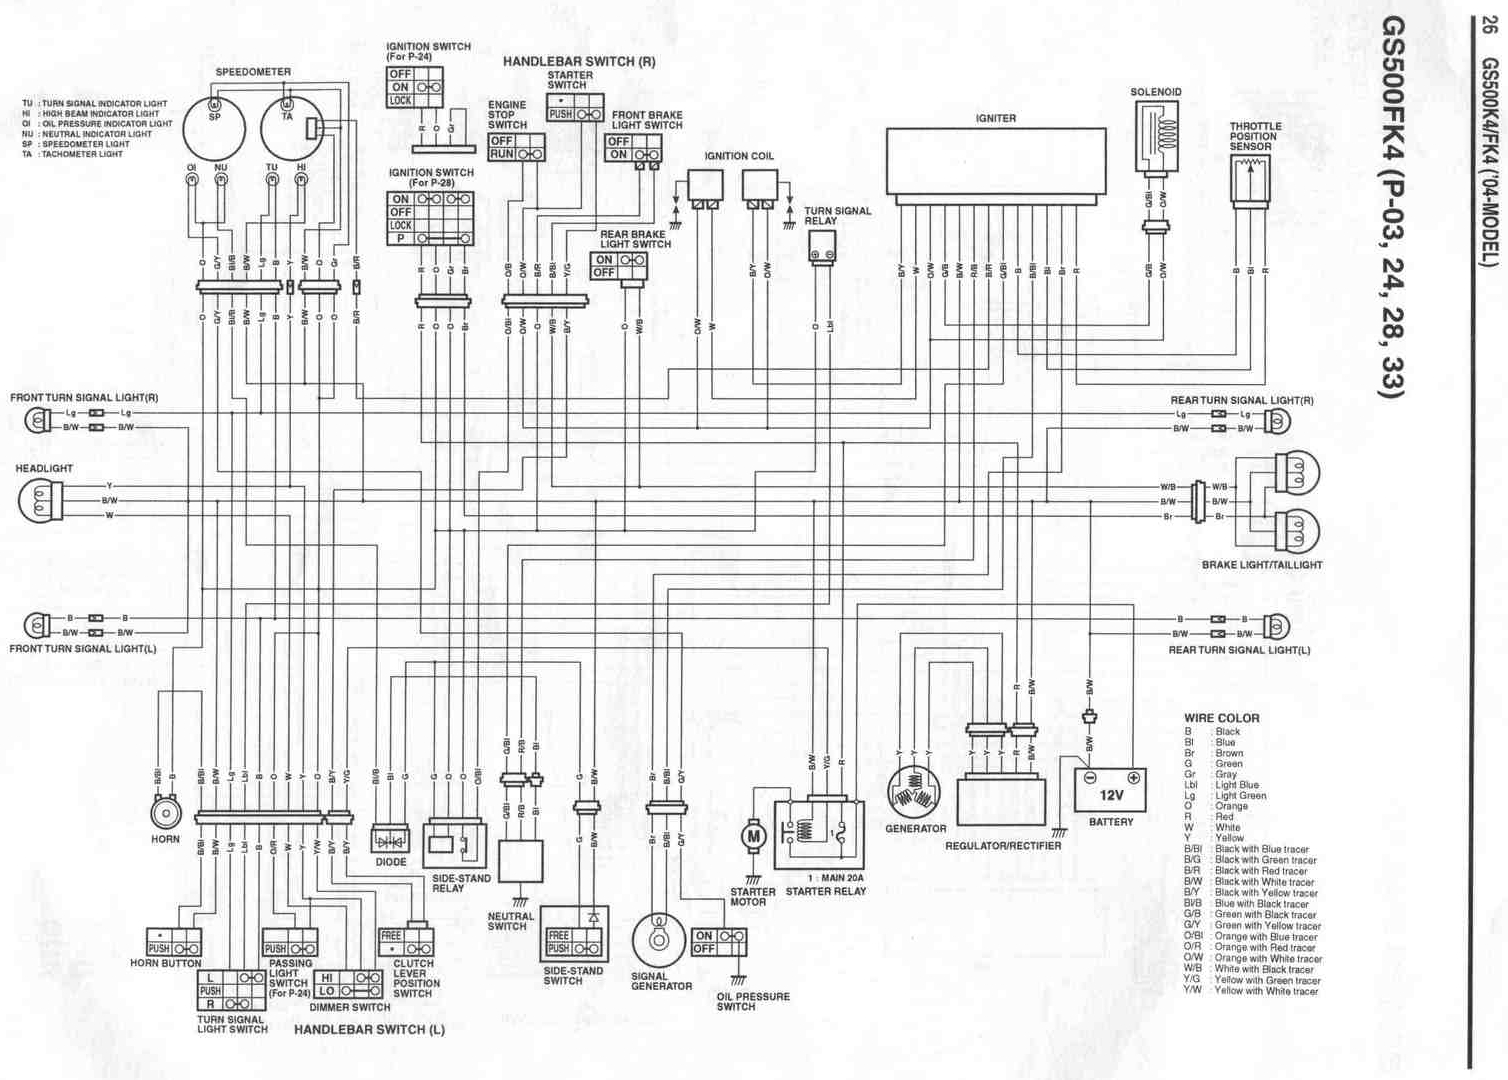 Suzuki Lt160 Wiring Diagram - Wiring Diagram Replace thick-activity -  thick-activity.miramontiseo.itthick-activity.miramontiseo.it